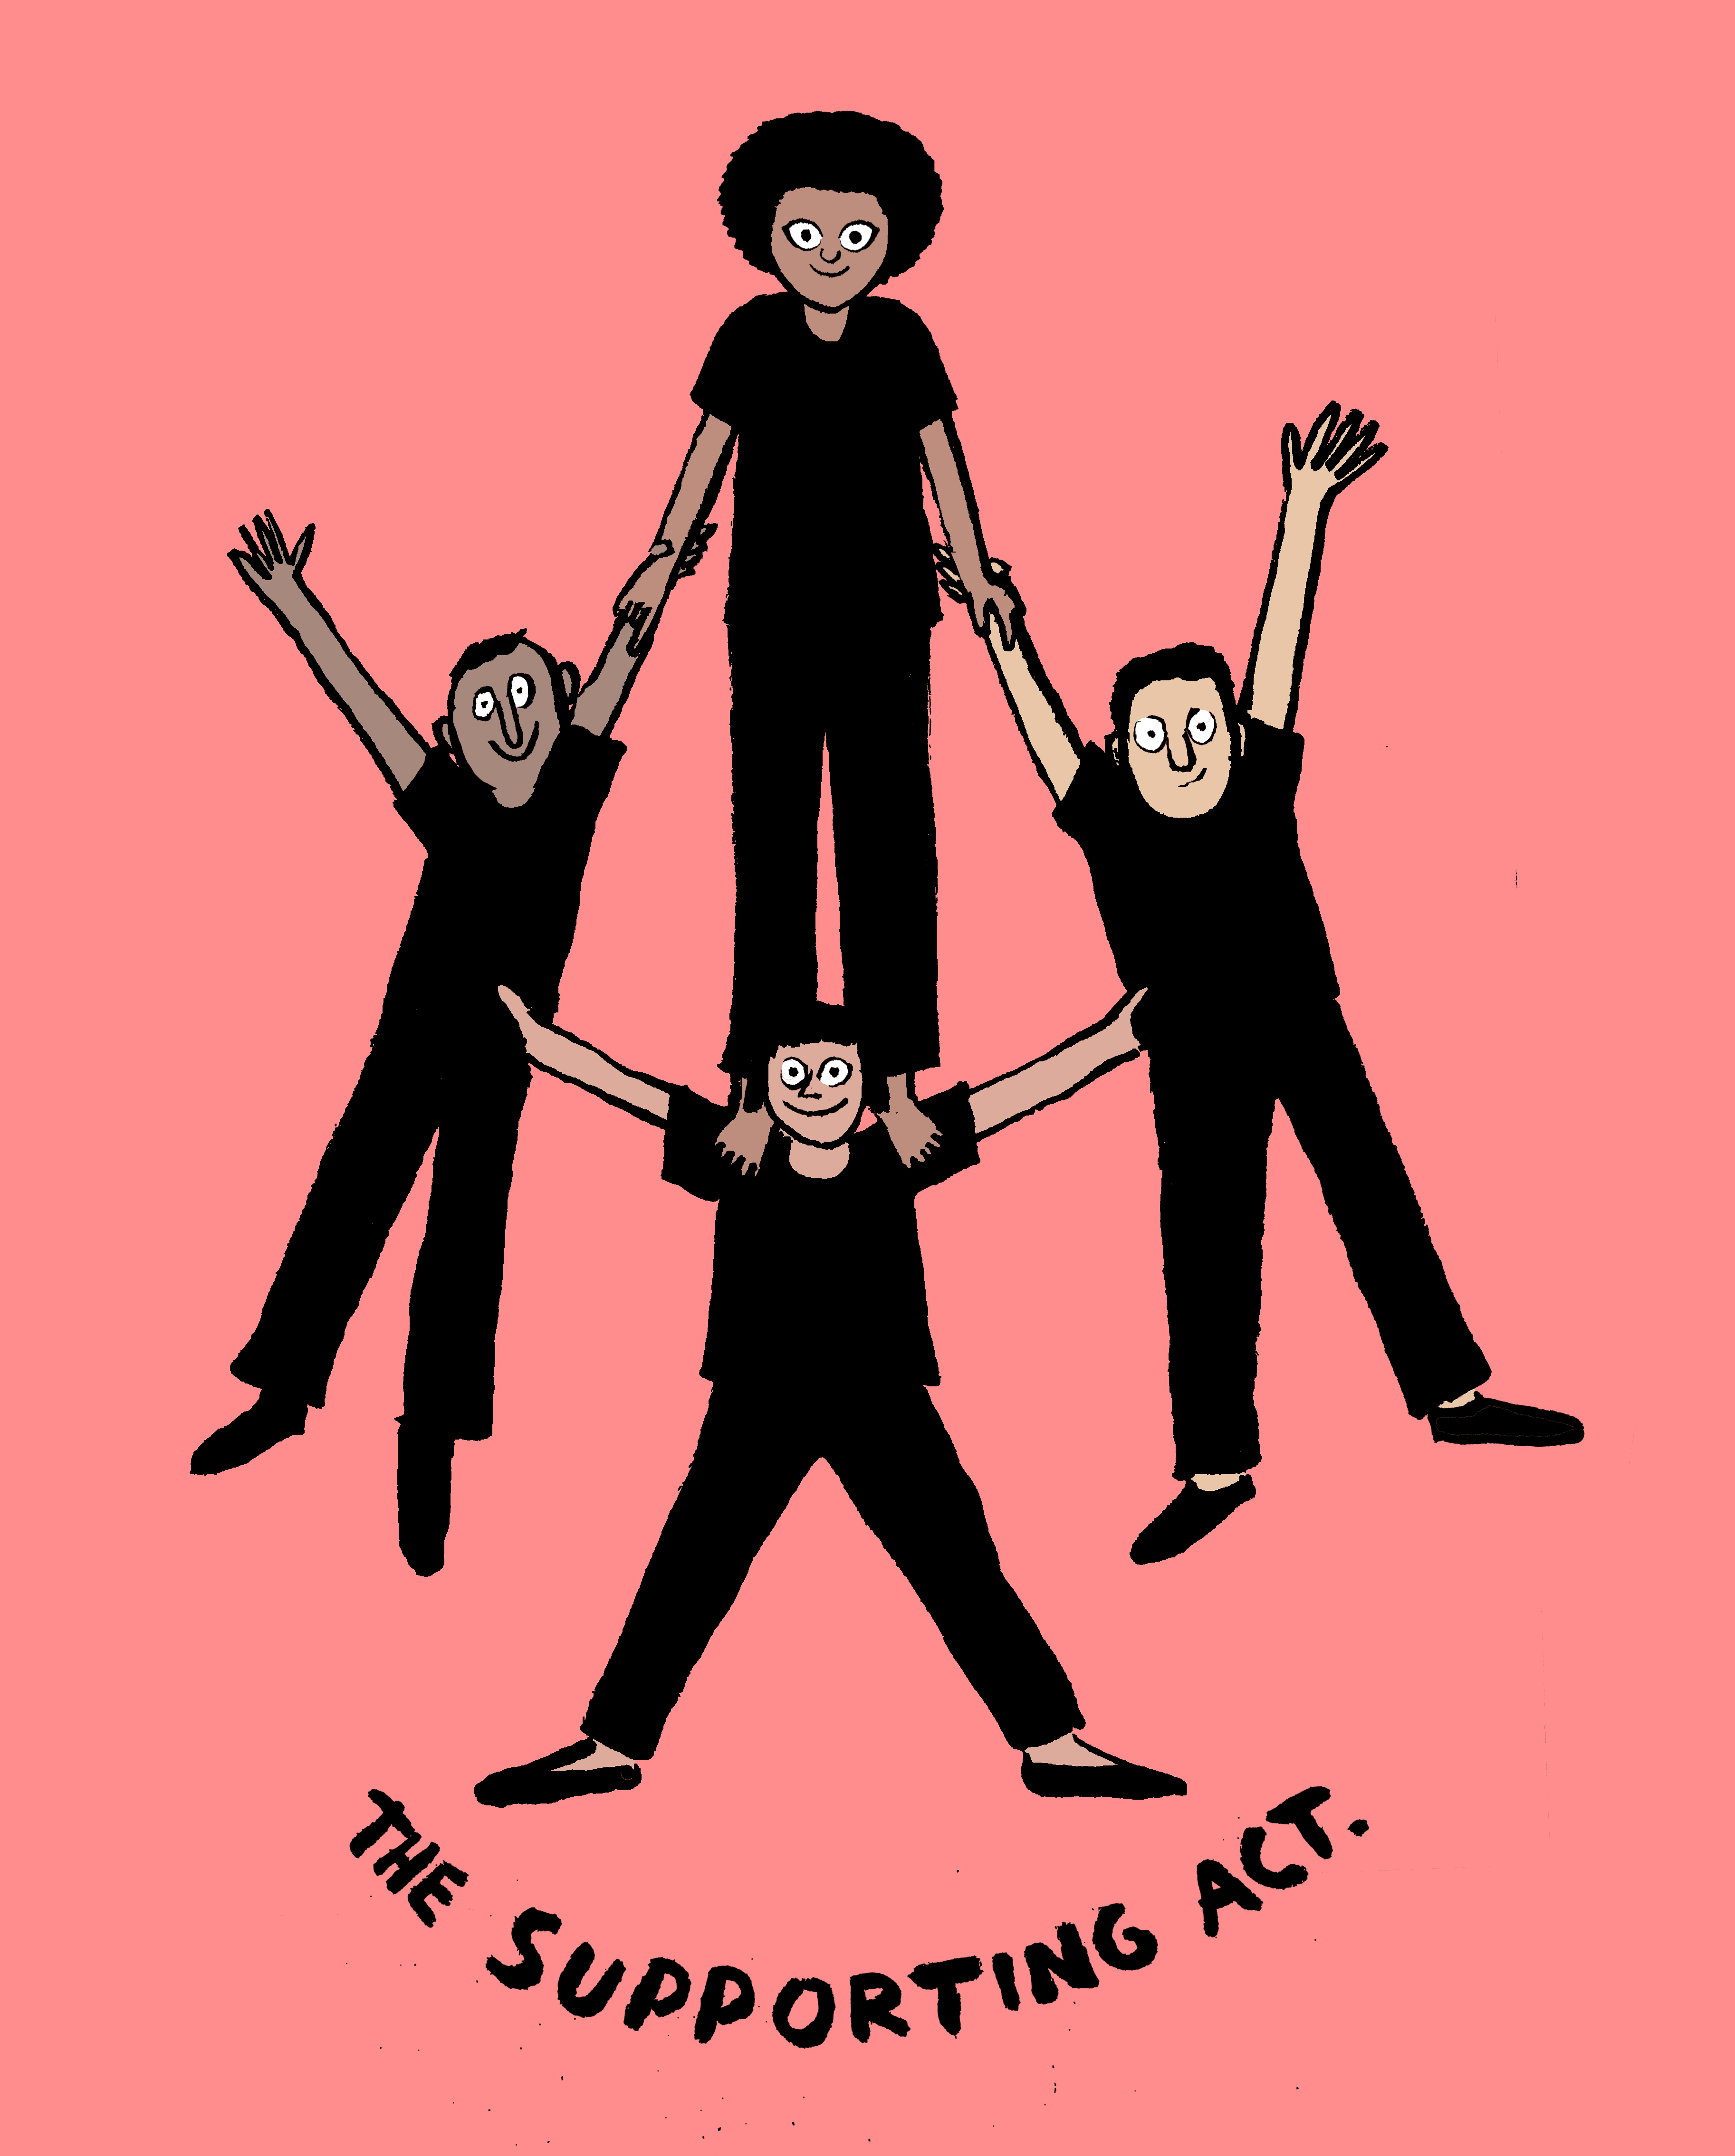 Jean Jullien for WeTransfer's Supporting Act Foundation